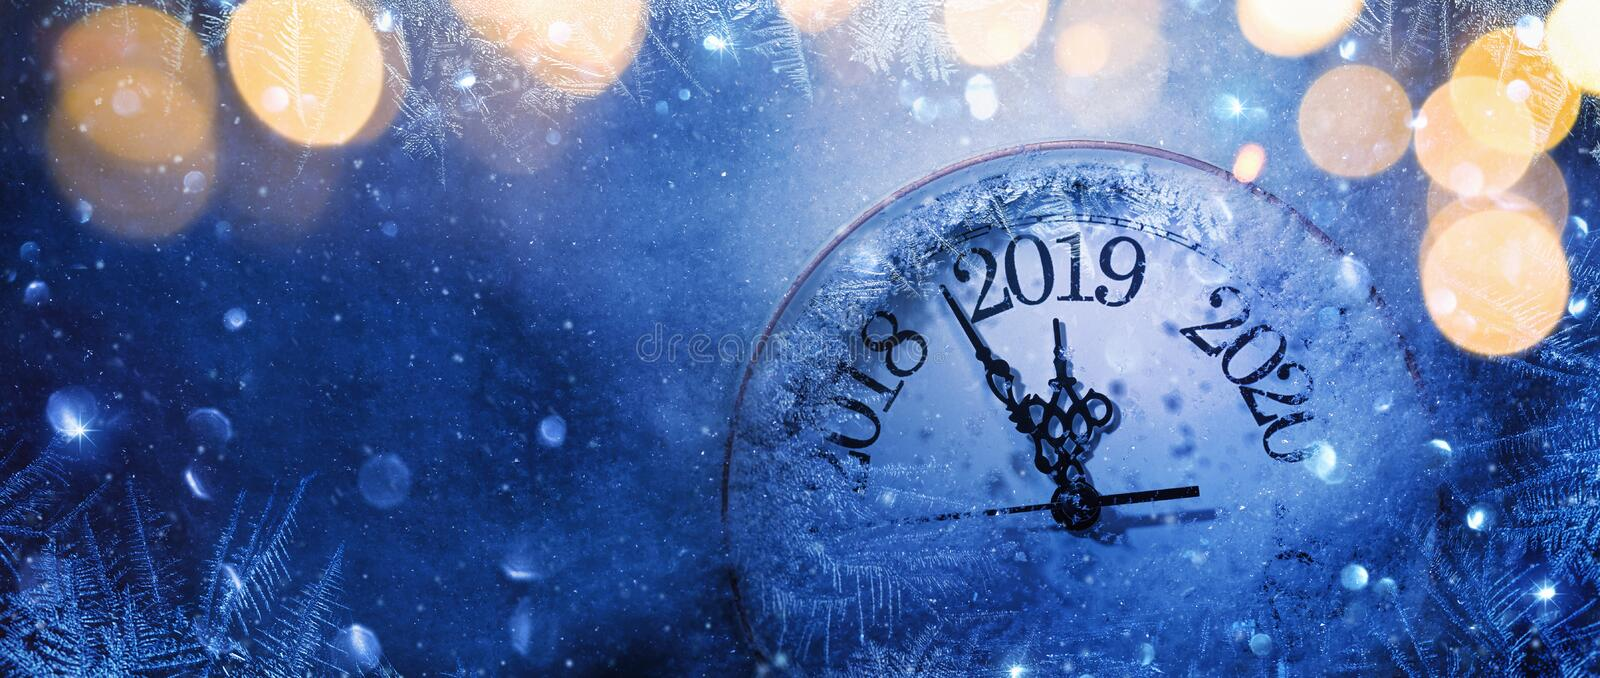 Happy New Year 2019. Winter Celebration stock images